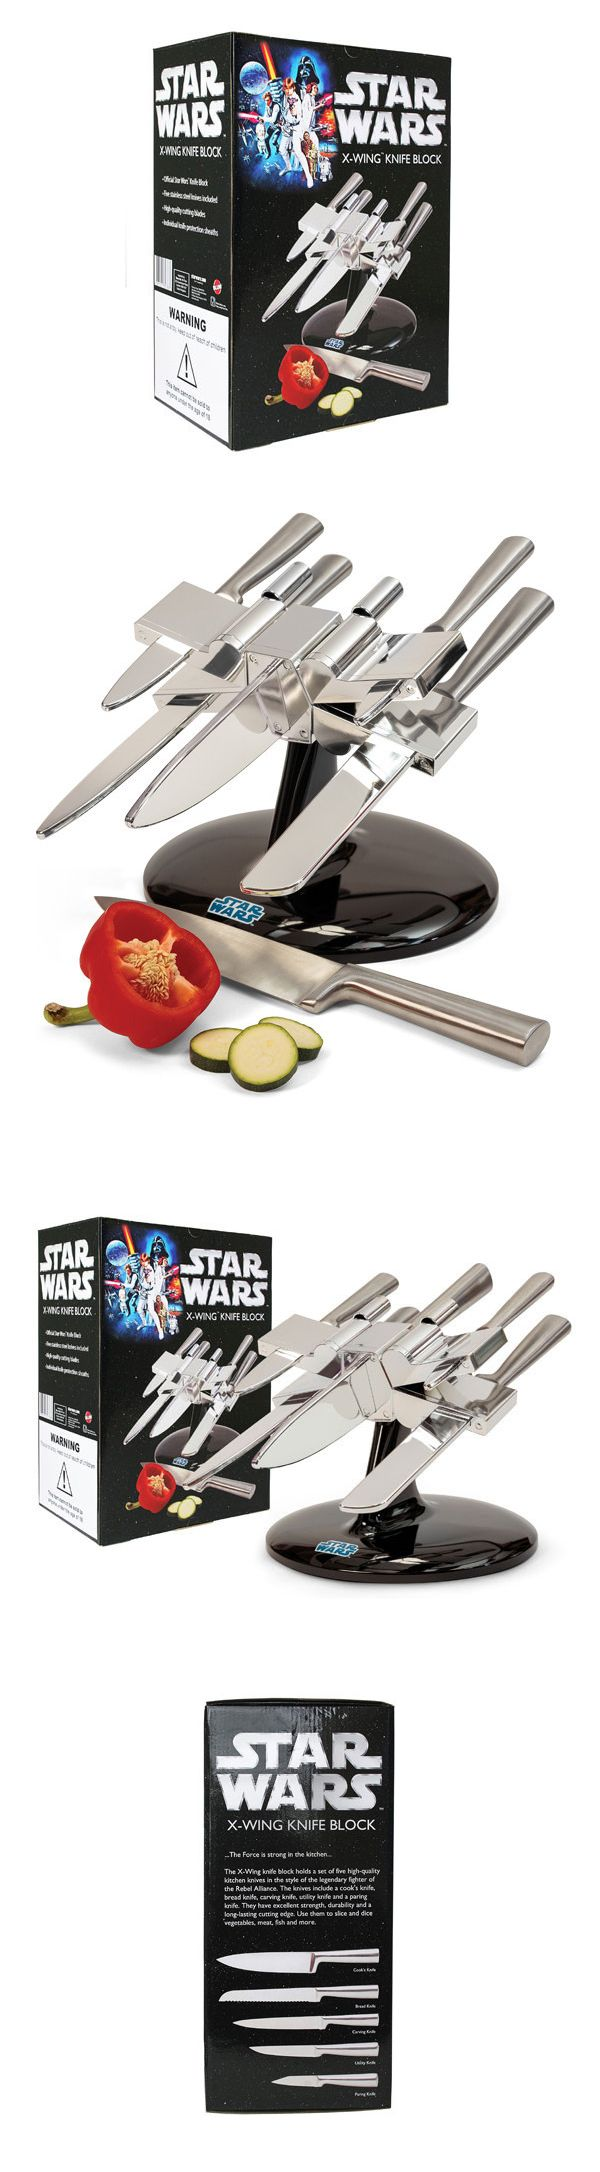 """A Knife Holder Shaped Like an X-Wing Starfighter From 'Star Wars'  The officially licensed Star Wars X-Wing Starfighter Knife Holder from The Fowndry will """"give your regular old kitchenware a rebellious kick in the vegetables."""" Their chrome-effect plastic knife holder comes loaded with five stainless steel knives and is available to purchase online."""